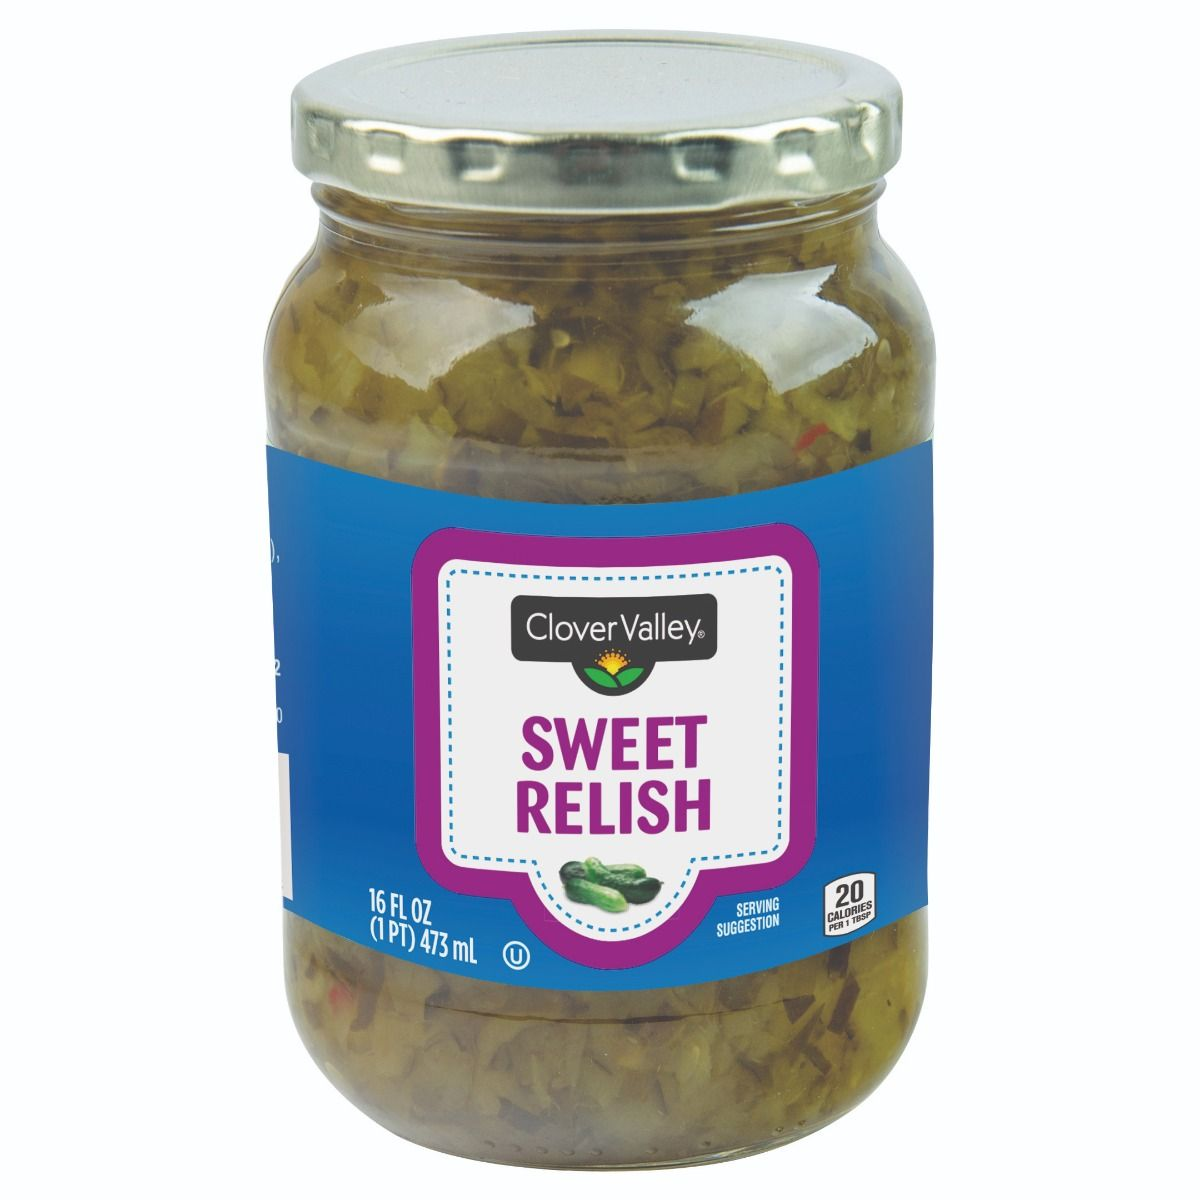 Clover Valley Sweet Relish, 16 oz